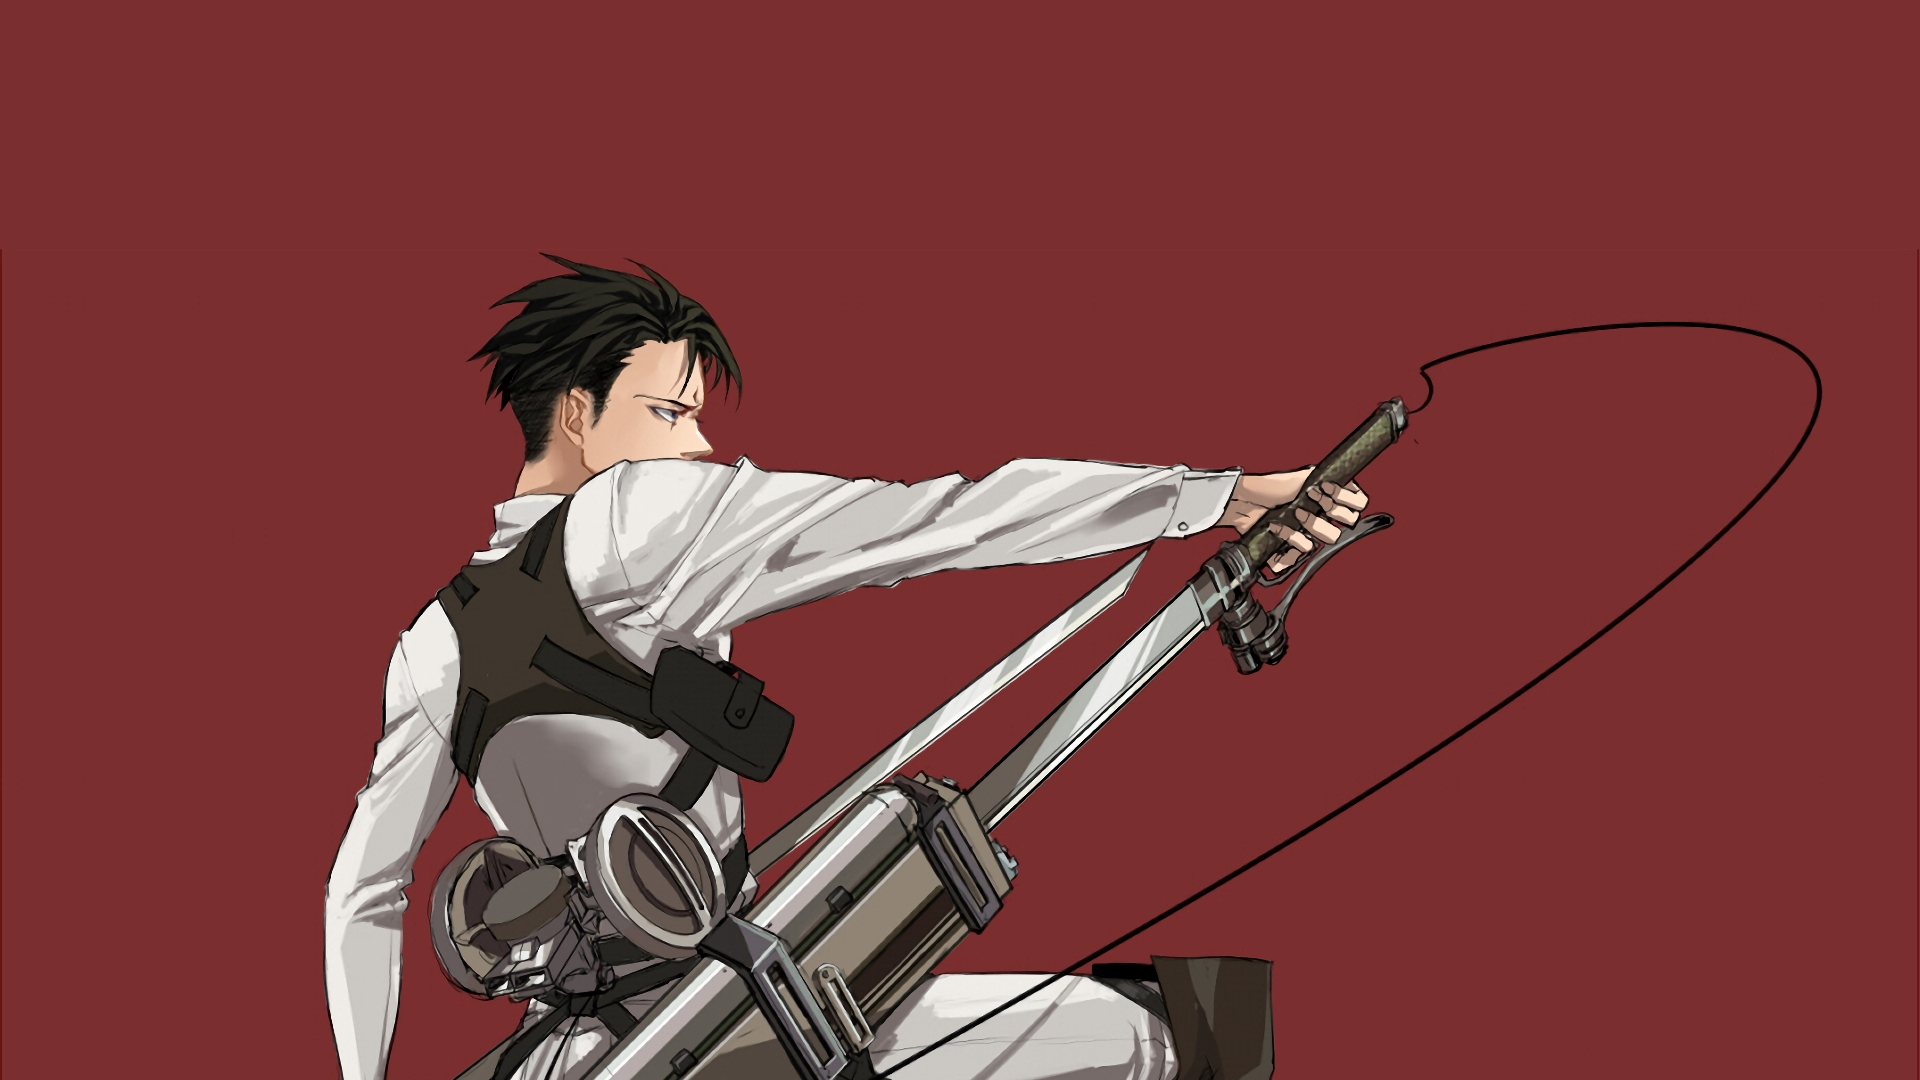 Desktop Wallpaper Attack On Titan Levi Ackerman Anime Hd Image Picture Background Z Esd9